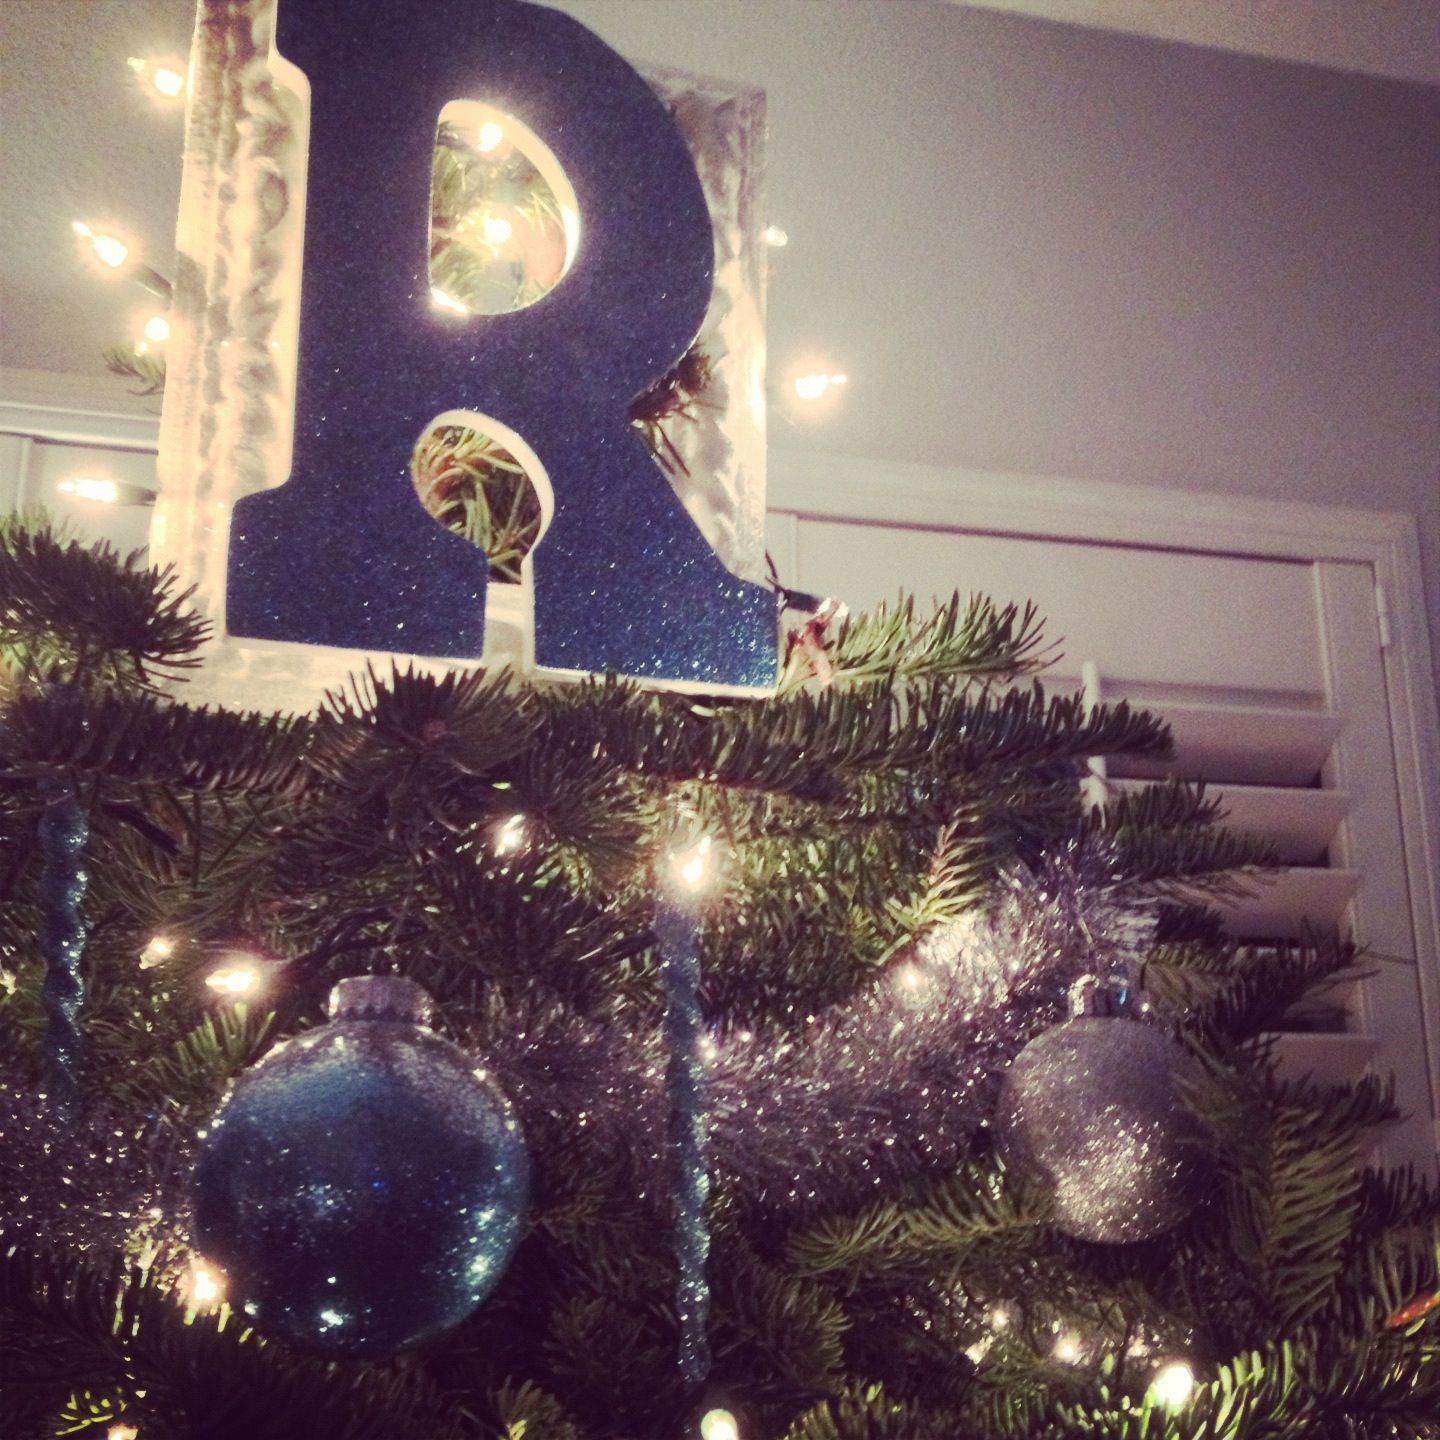 Letter Christmas Tree Topper: DIY Tree Topper! Buy Letter From Michaels.... Add Mod